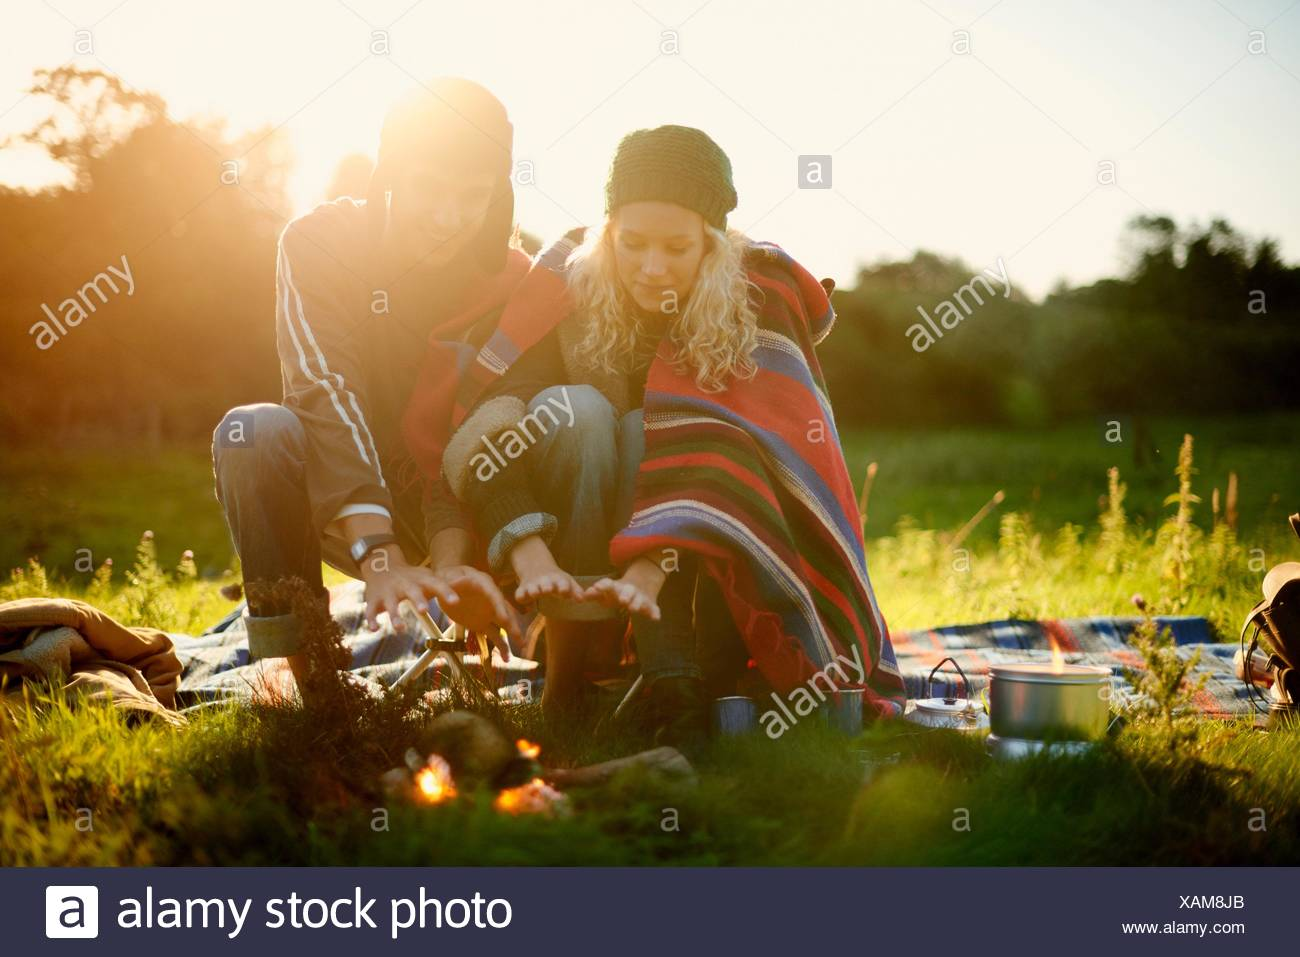 Young camping couple warming hands by campfire at dusk - Stock Image